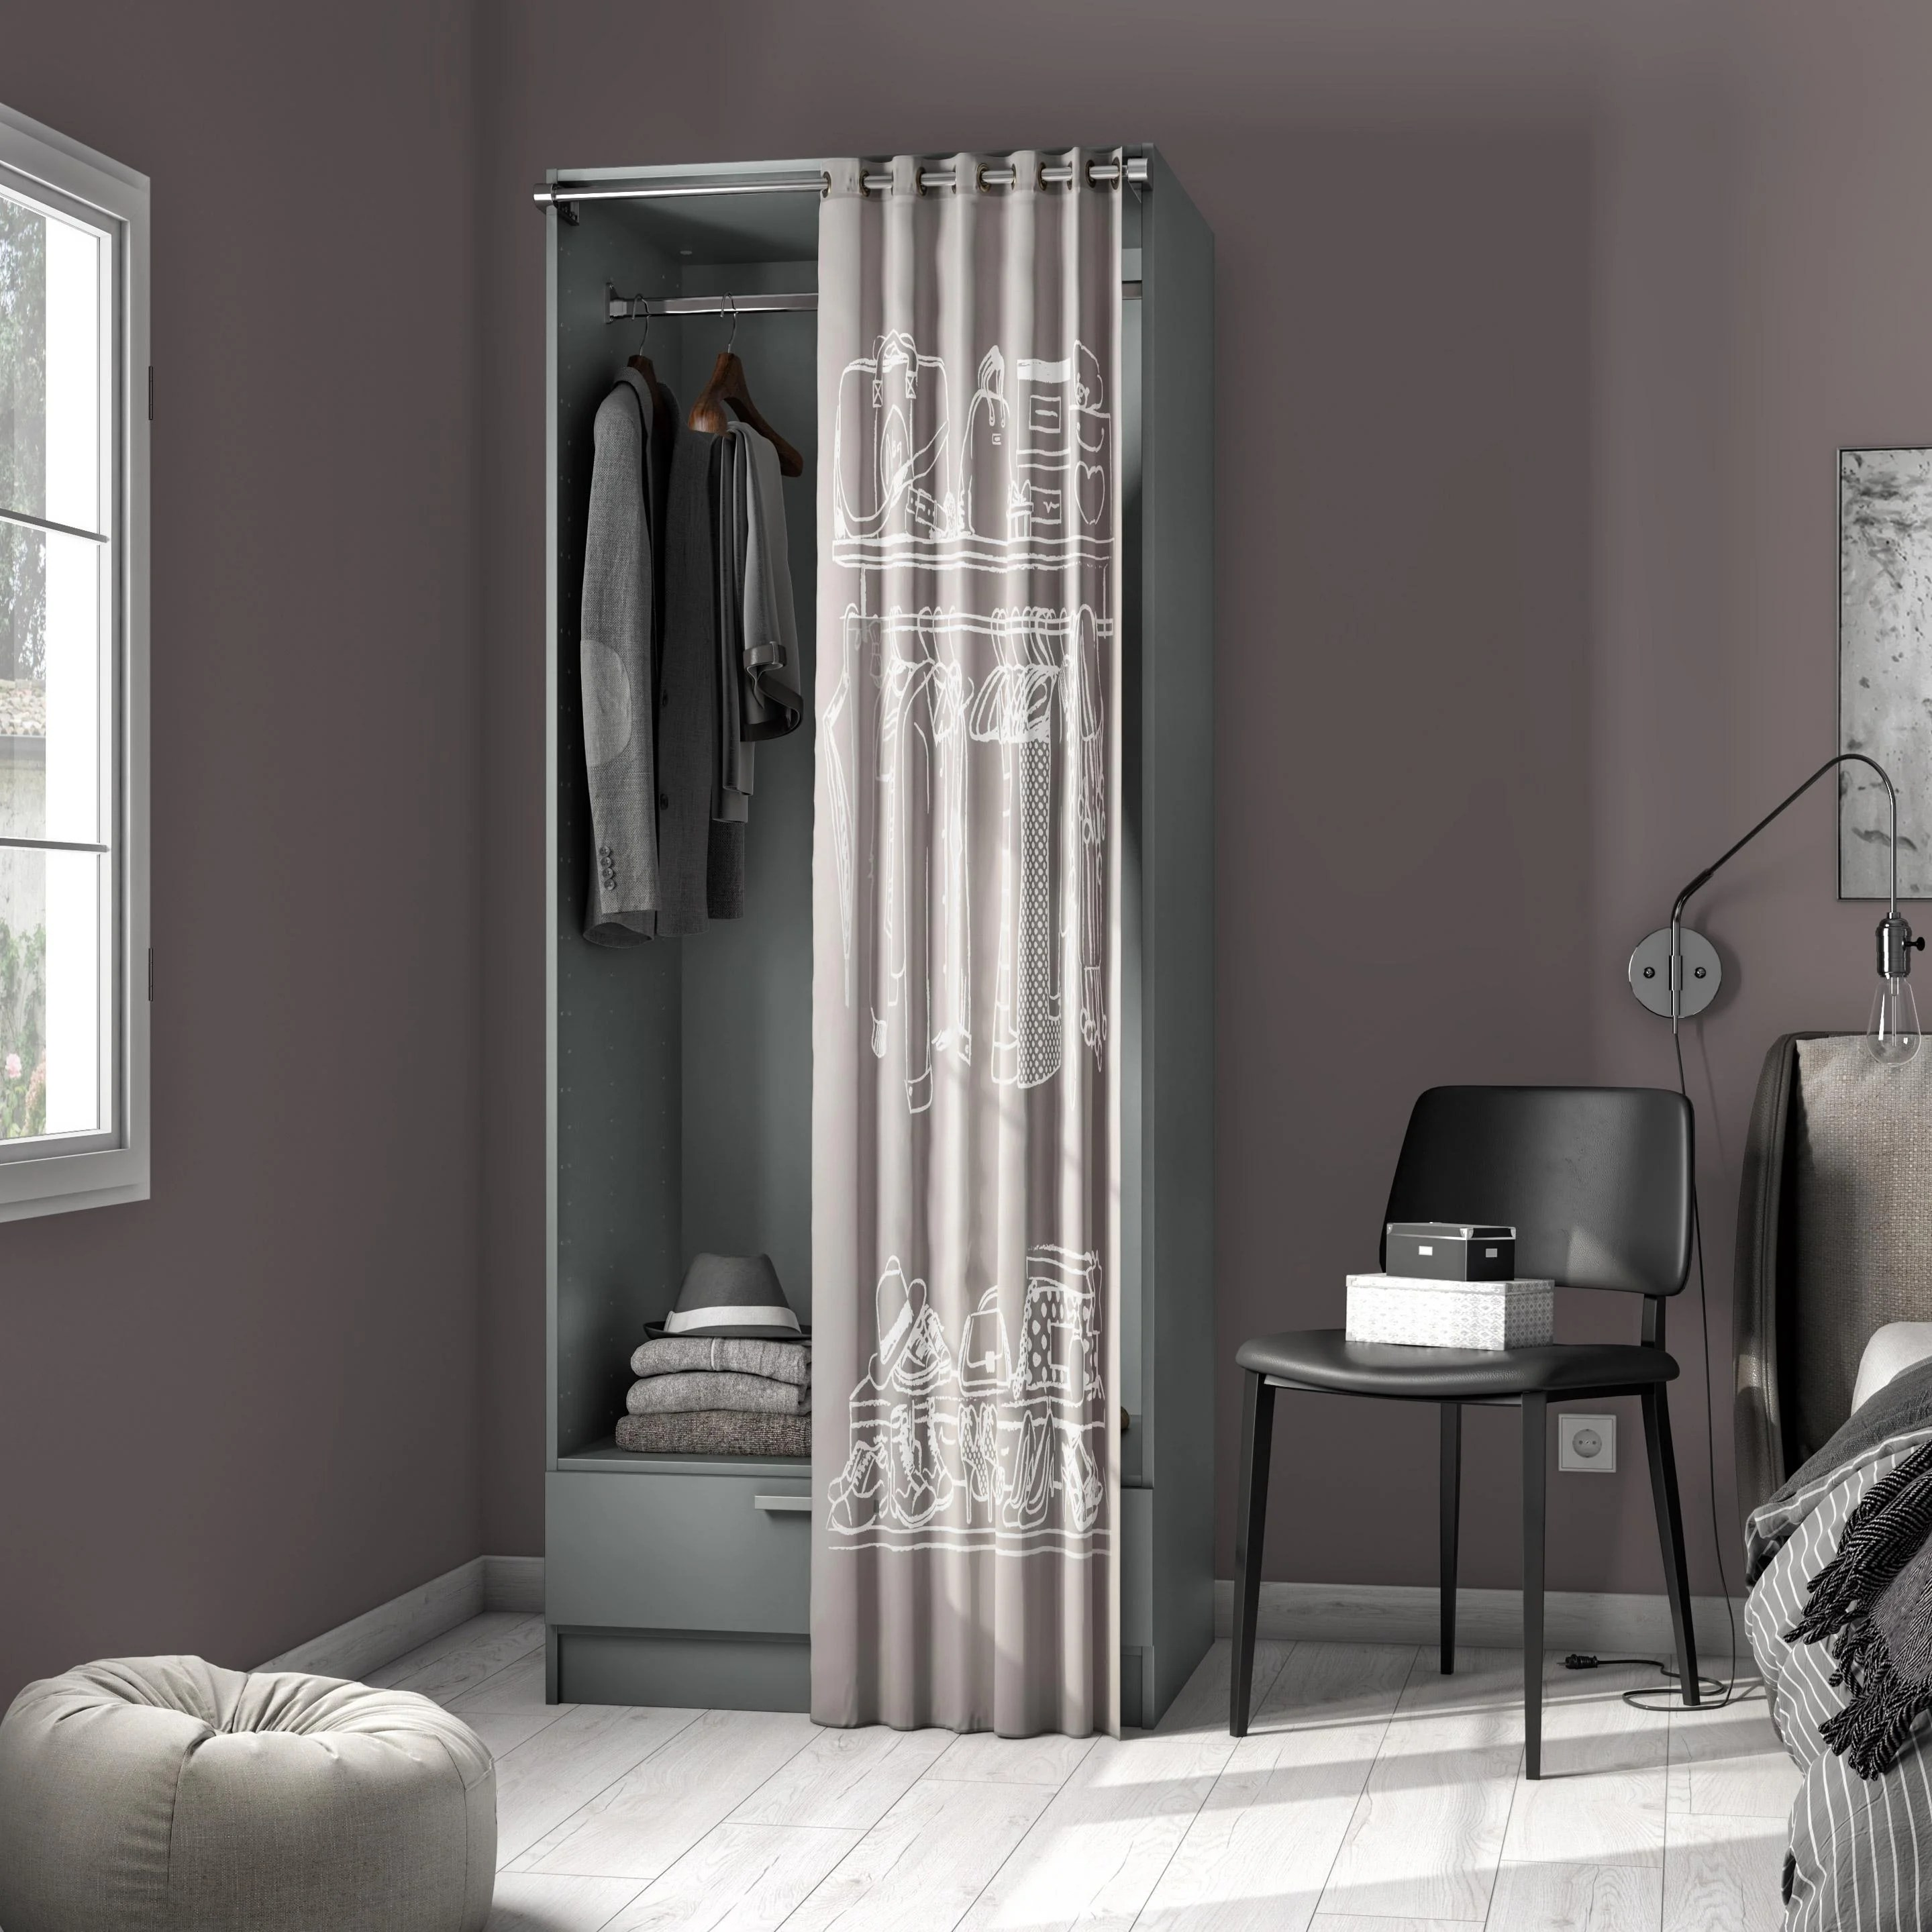 Dressing 200 Cm Dressing Gris Spaceo Home H 200 X L 80 X P 60 Cm Leroy Merlin